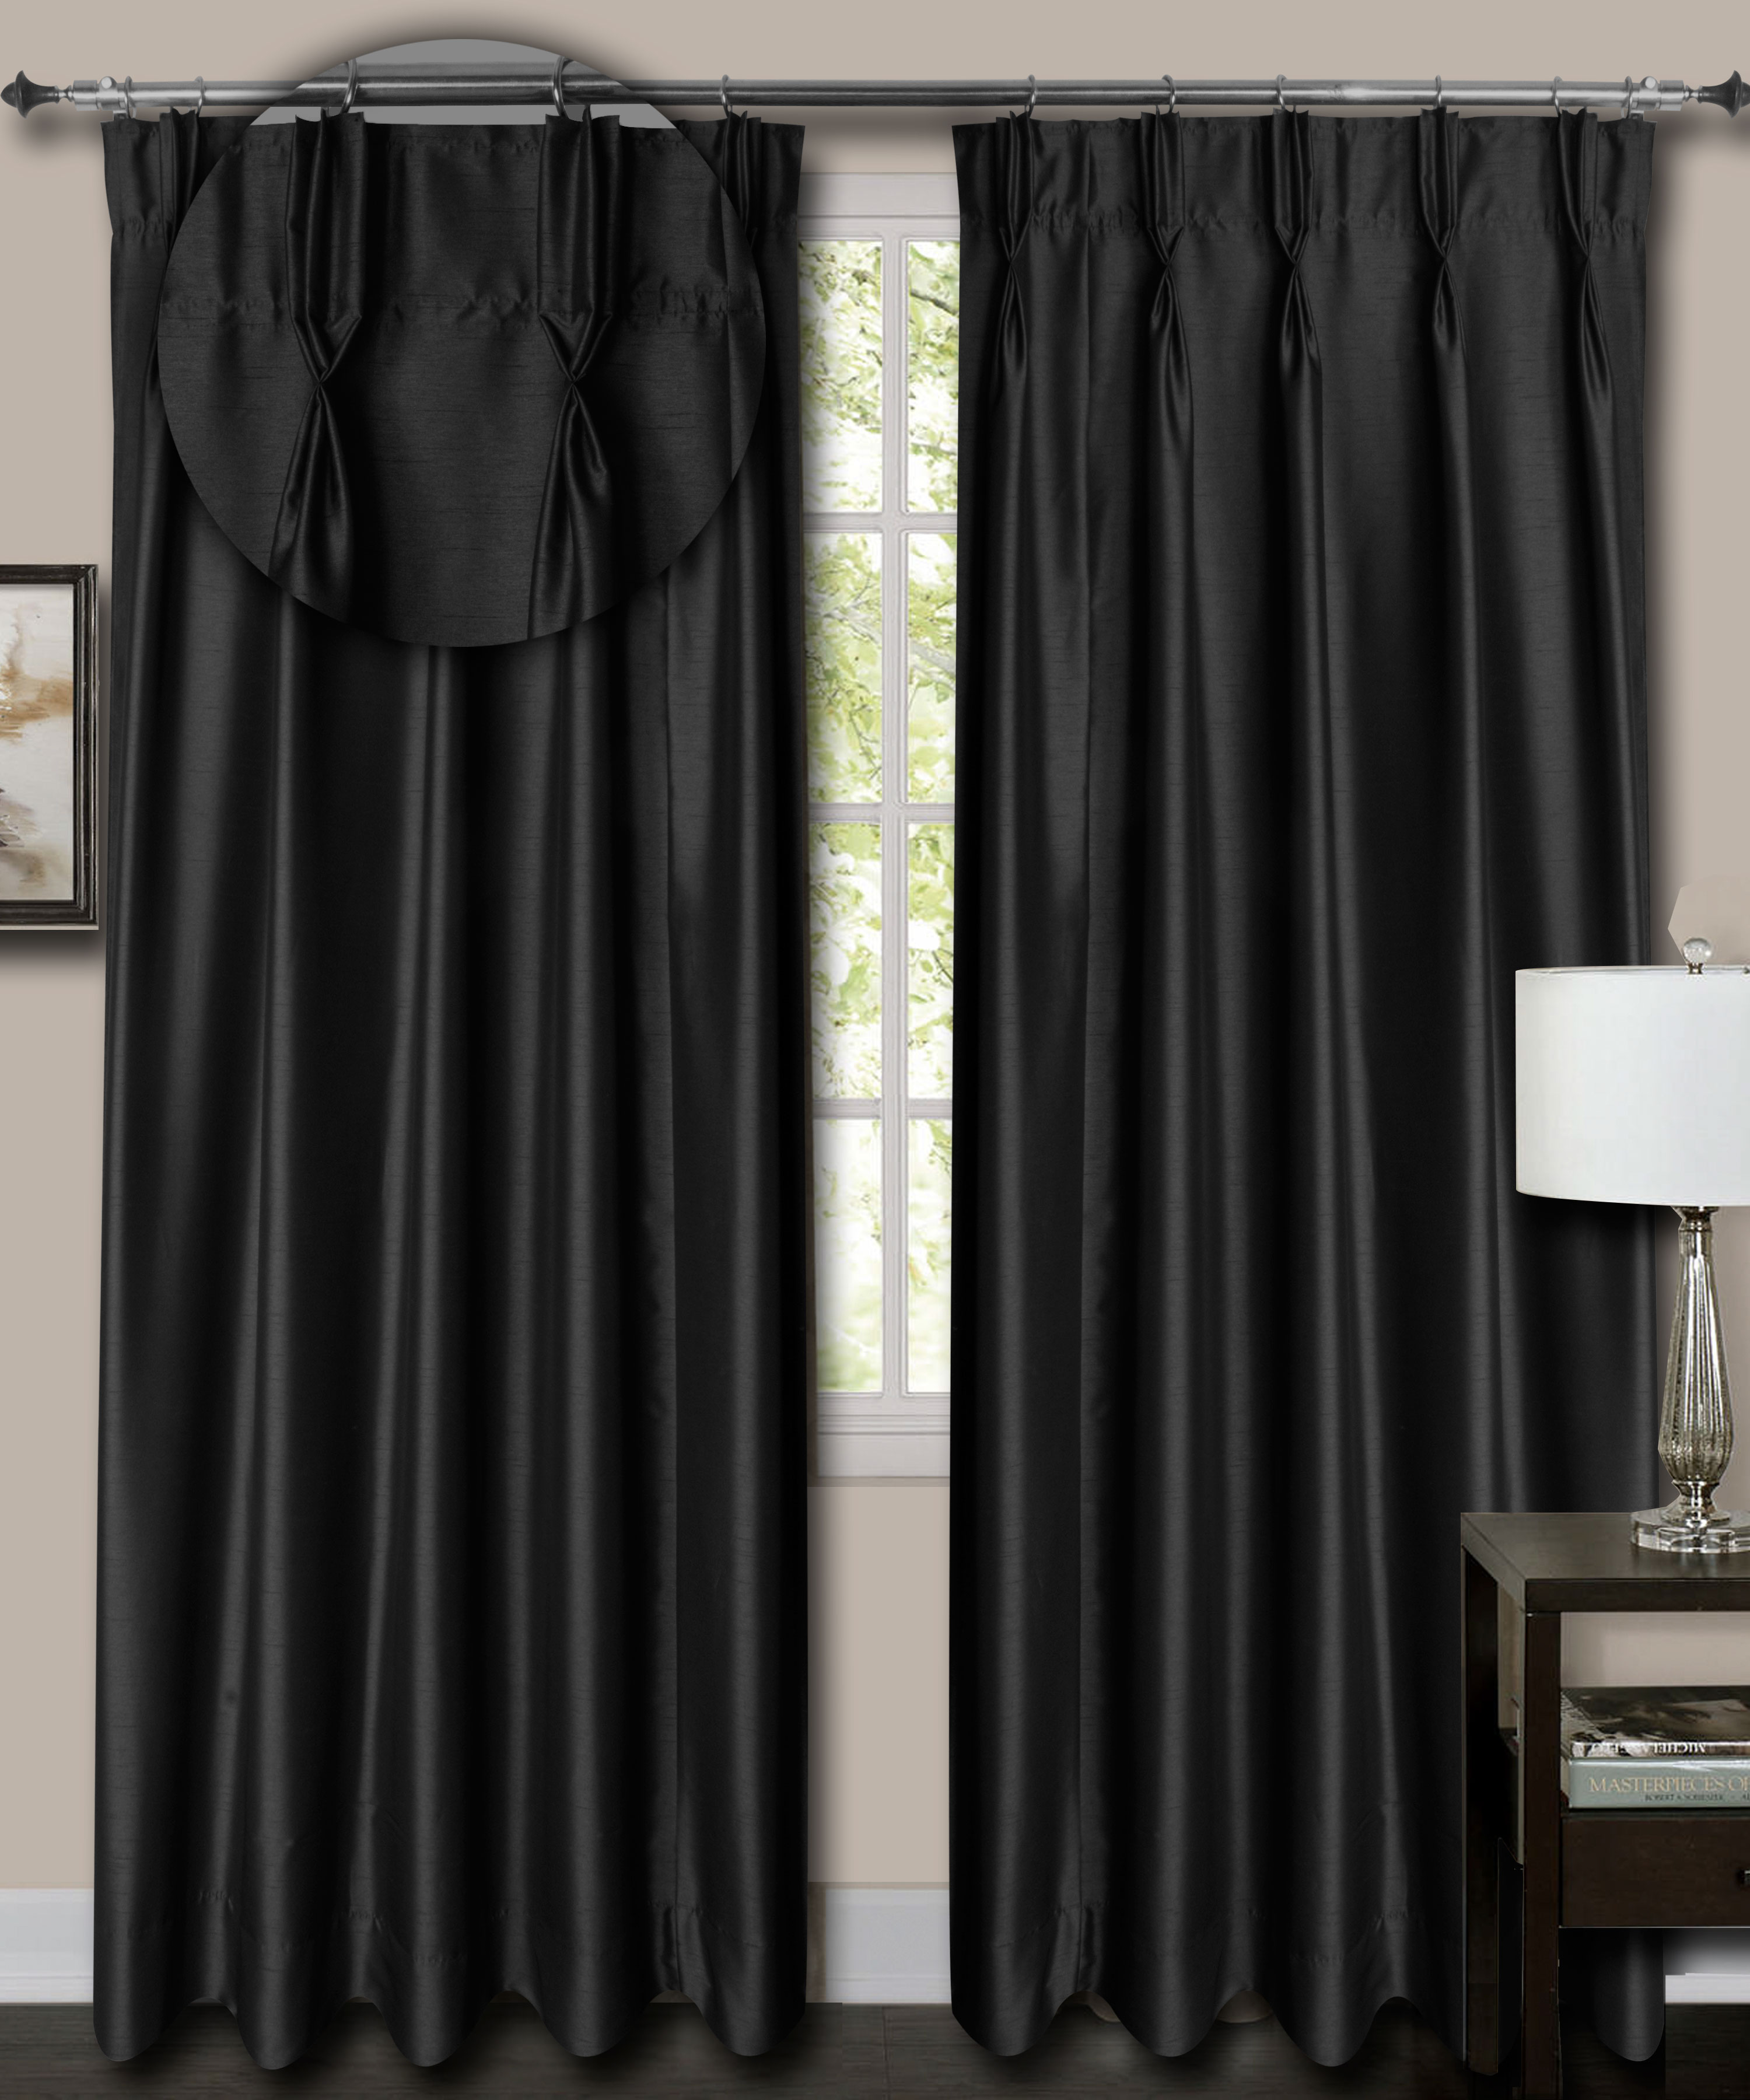 "French Pleat Top Black Faux Silk Dupioni Curtains. (52"" Wide,7 Feet Long,Blackout Lining)"